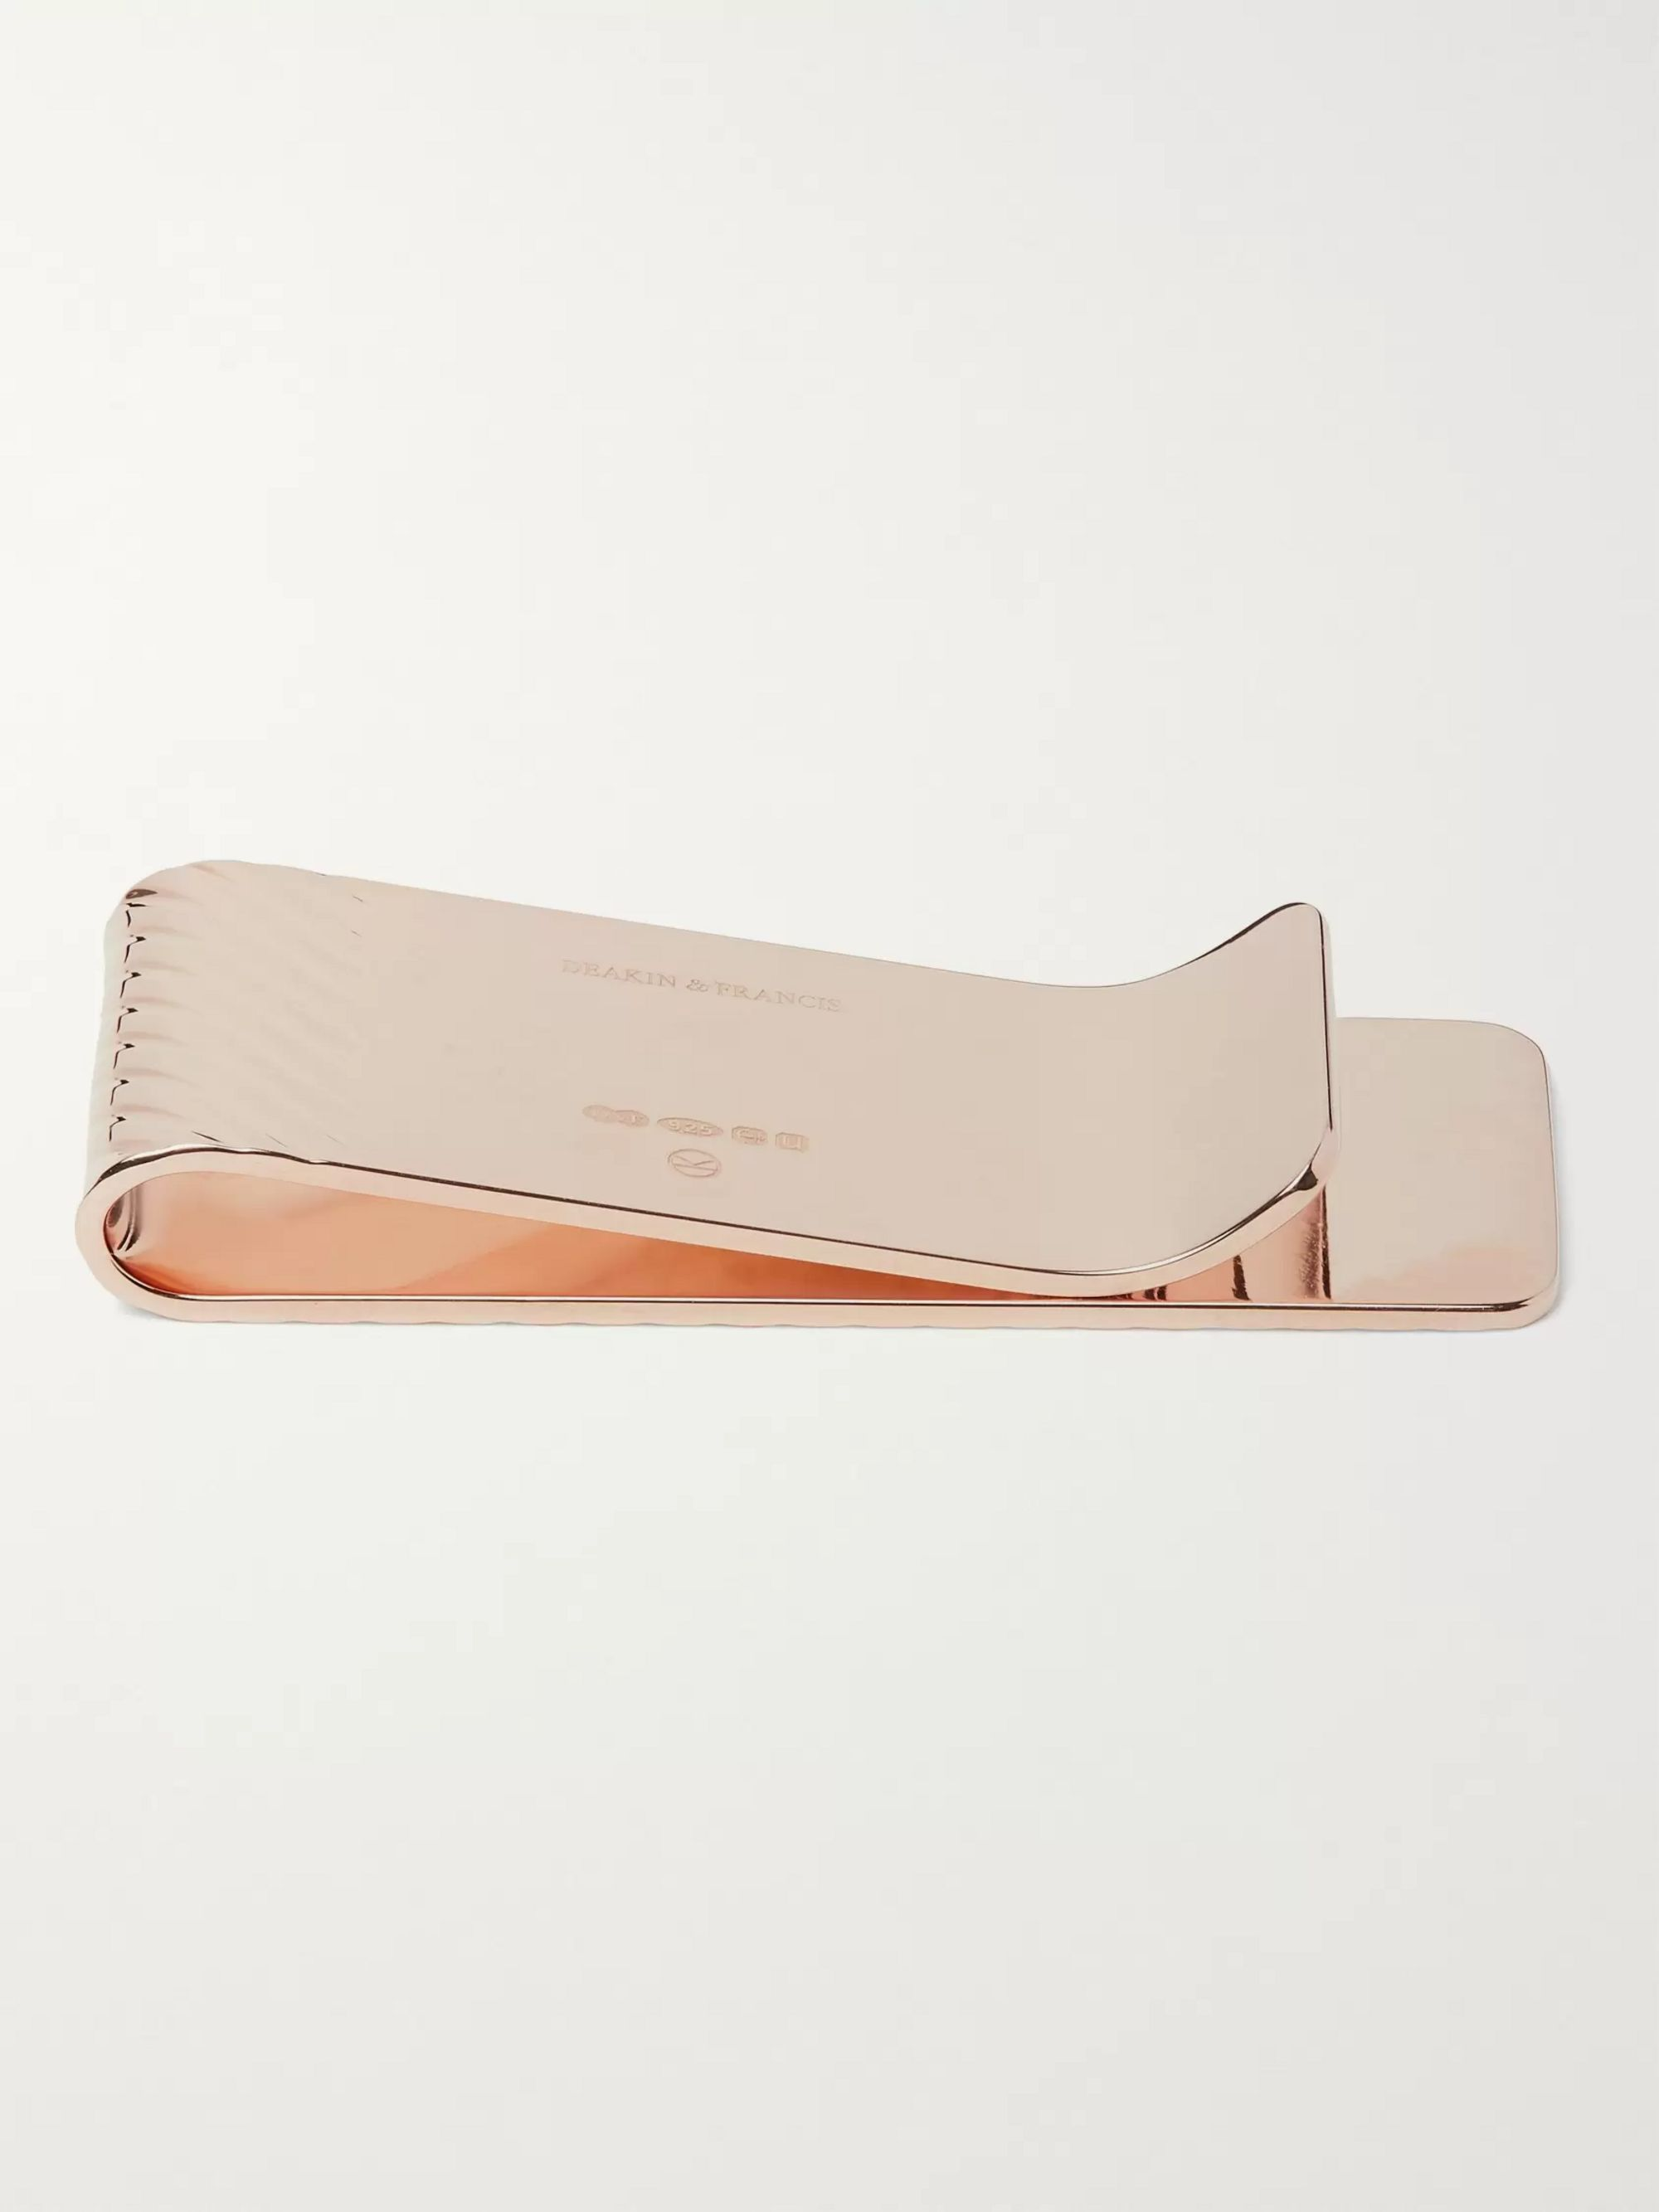 Kingsman + Deakin & Francis Rose Gold-Plated Money Clip